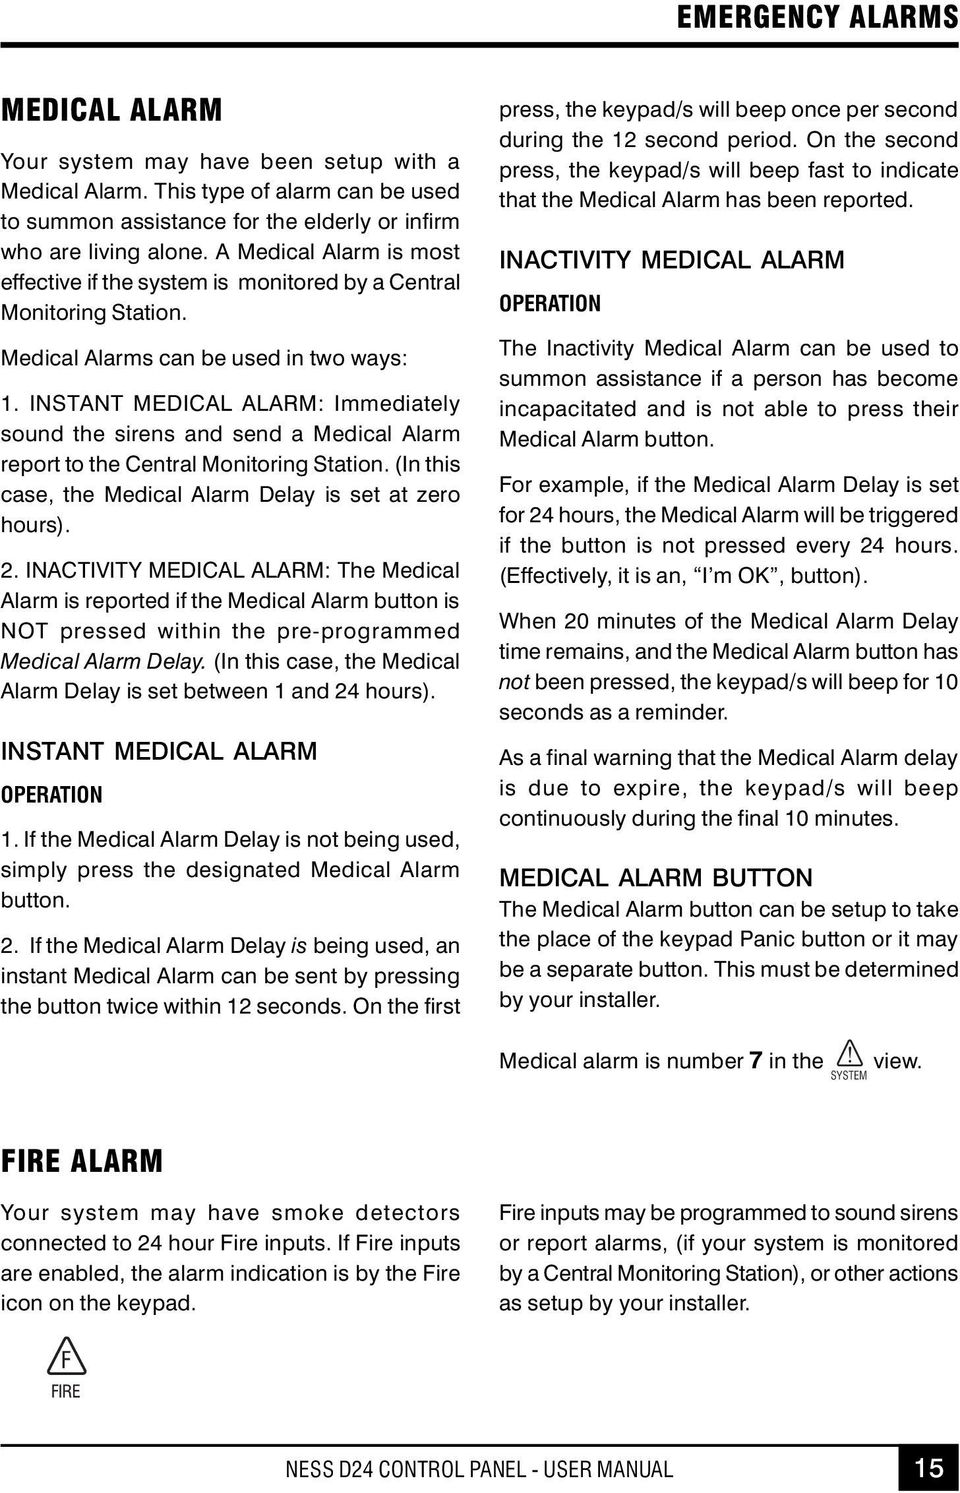 INSTANT MEDICAL ALARM: Immediately sound the sirens and send a Medical Alarm report to the Central Monitoring Station. (In this case, the Medical Alarm Delay is set at zero hours). 2.